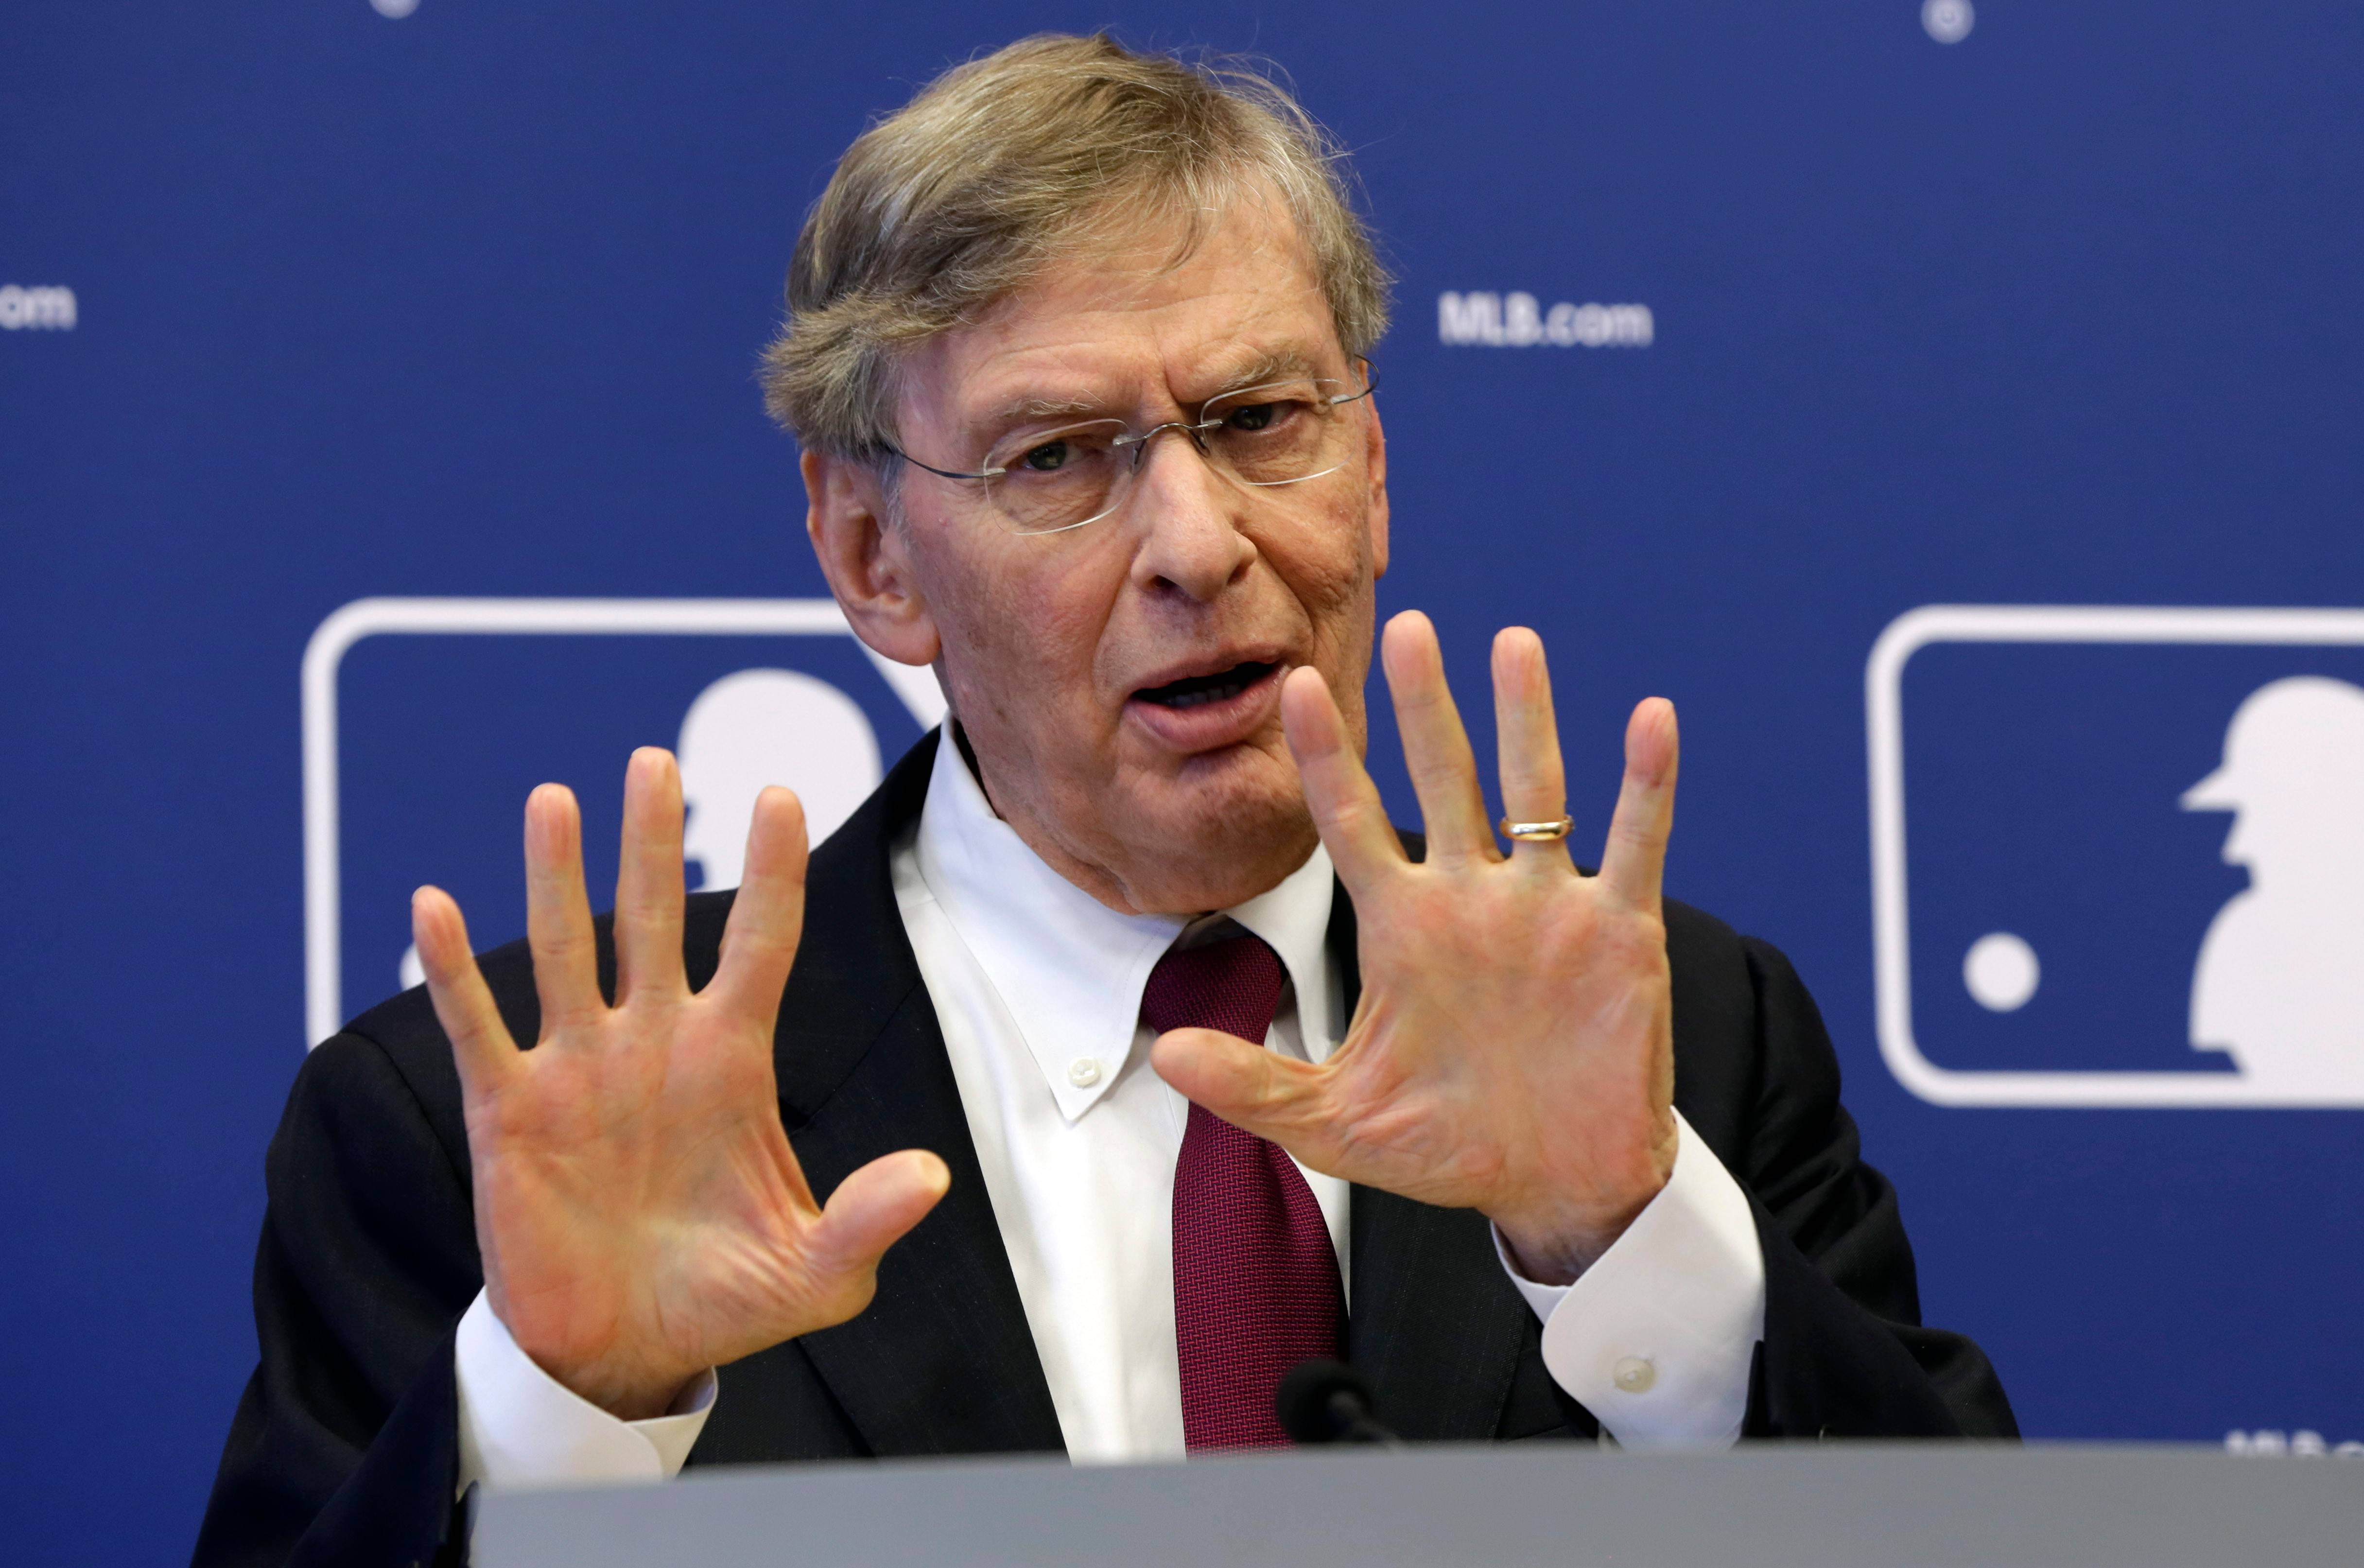 Barry Rozner says it's fitting for former MLB commissioner Bud Selig to take the stage in Cooperstown on Hall of Fame weekend alongside Barry Bonds and Roger Clemens. Selig, after all, was the Steroids Commissioner, profiting more from steroid use than any other person in baseball, aside from a few players.